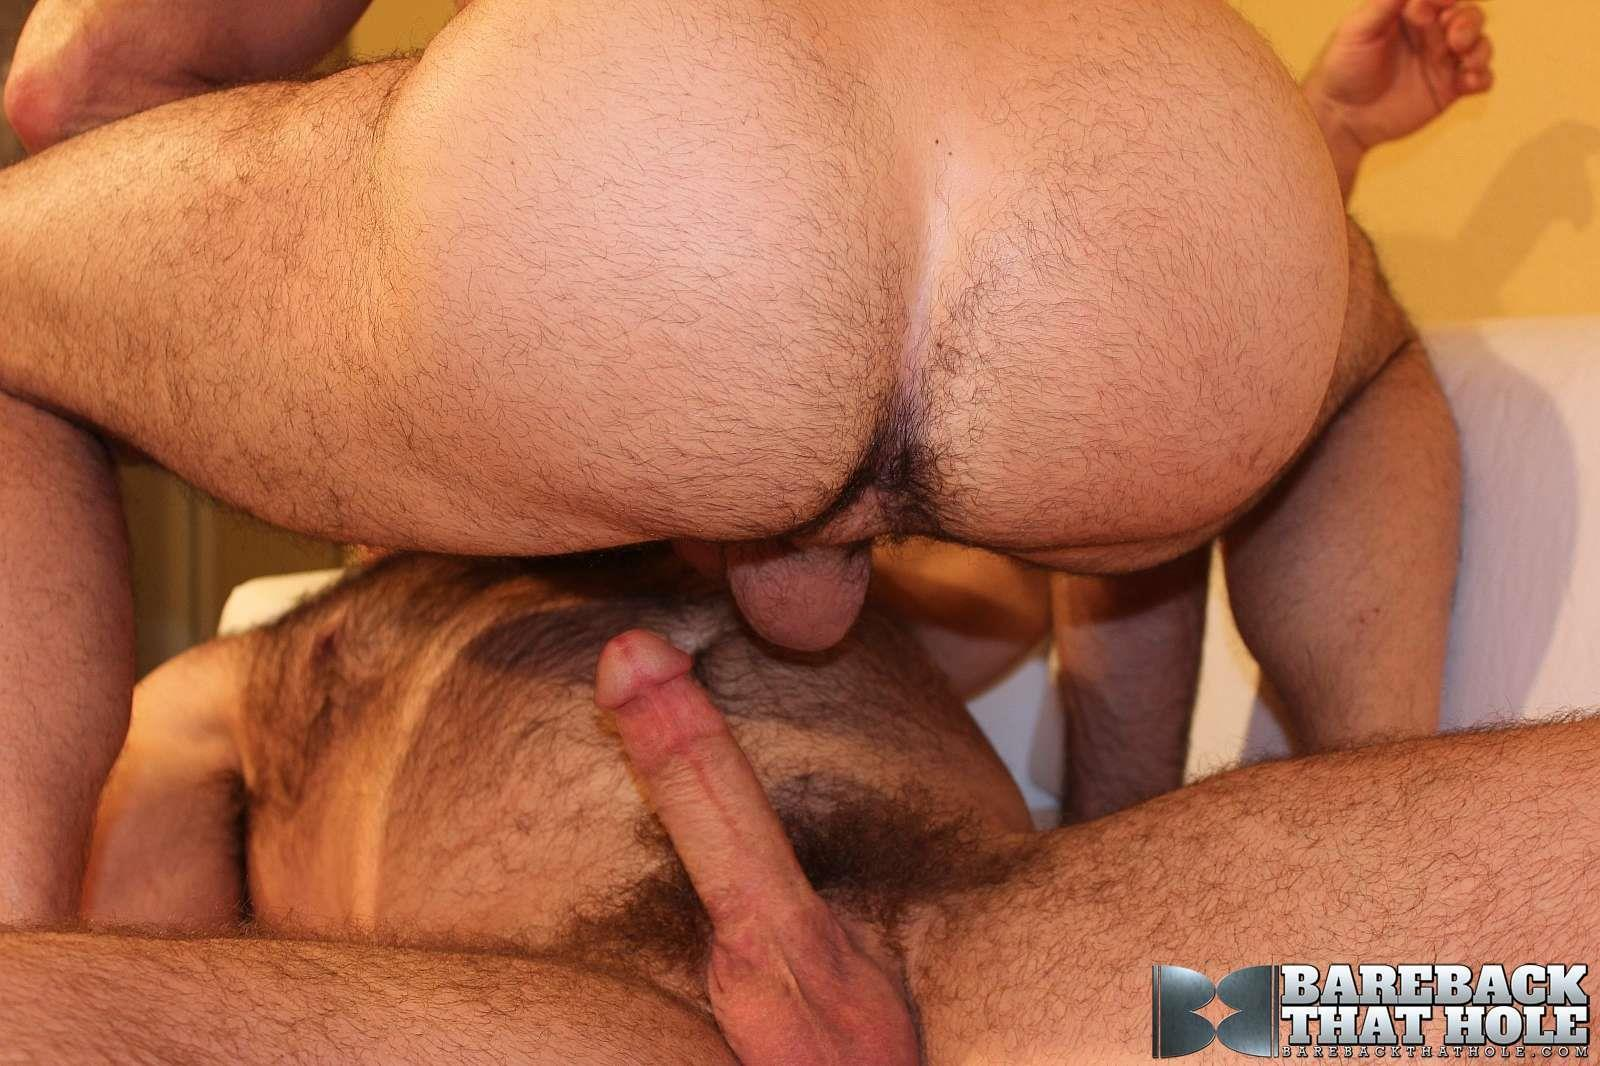 Bareback-That-Hole-Brad-Kalvo-and-Adam-Russo-Hairy-Daddy-Barebacking-Muscle-Hunk-Amateur-Gay-Porn-15 Hunky Hairy Brad Kalvo Barebacking Adam Russo